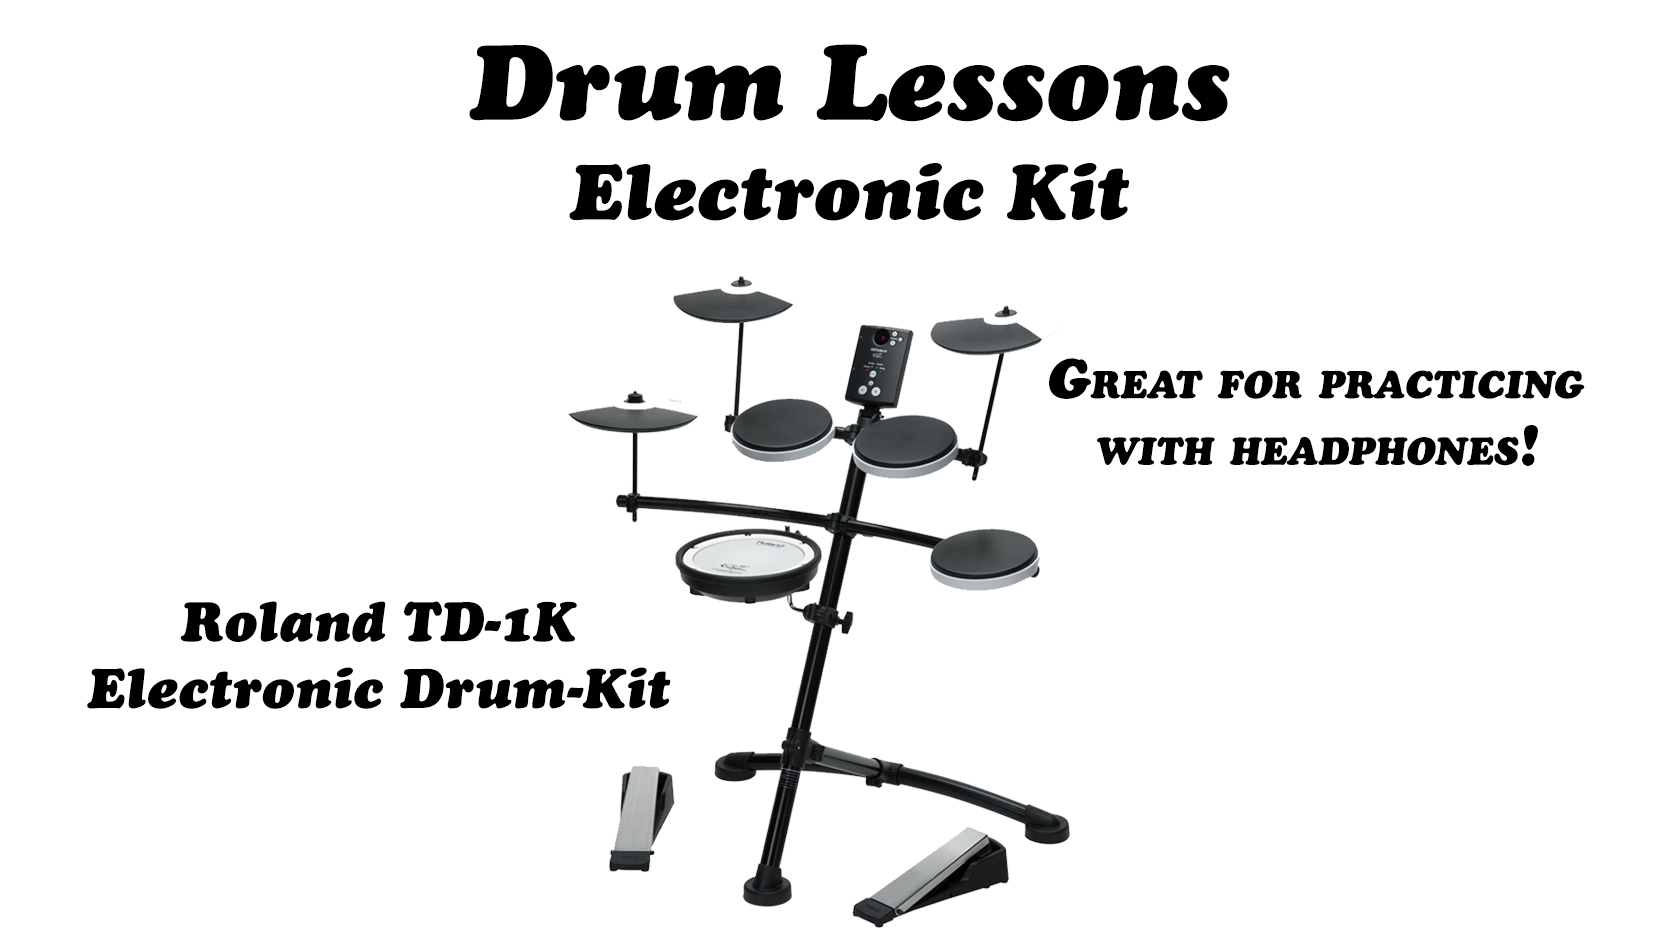 Electronic Drum Lessons Package